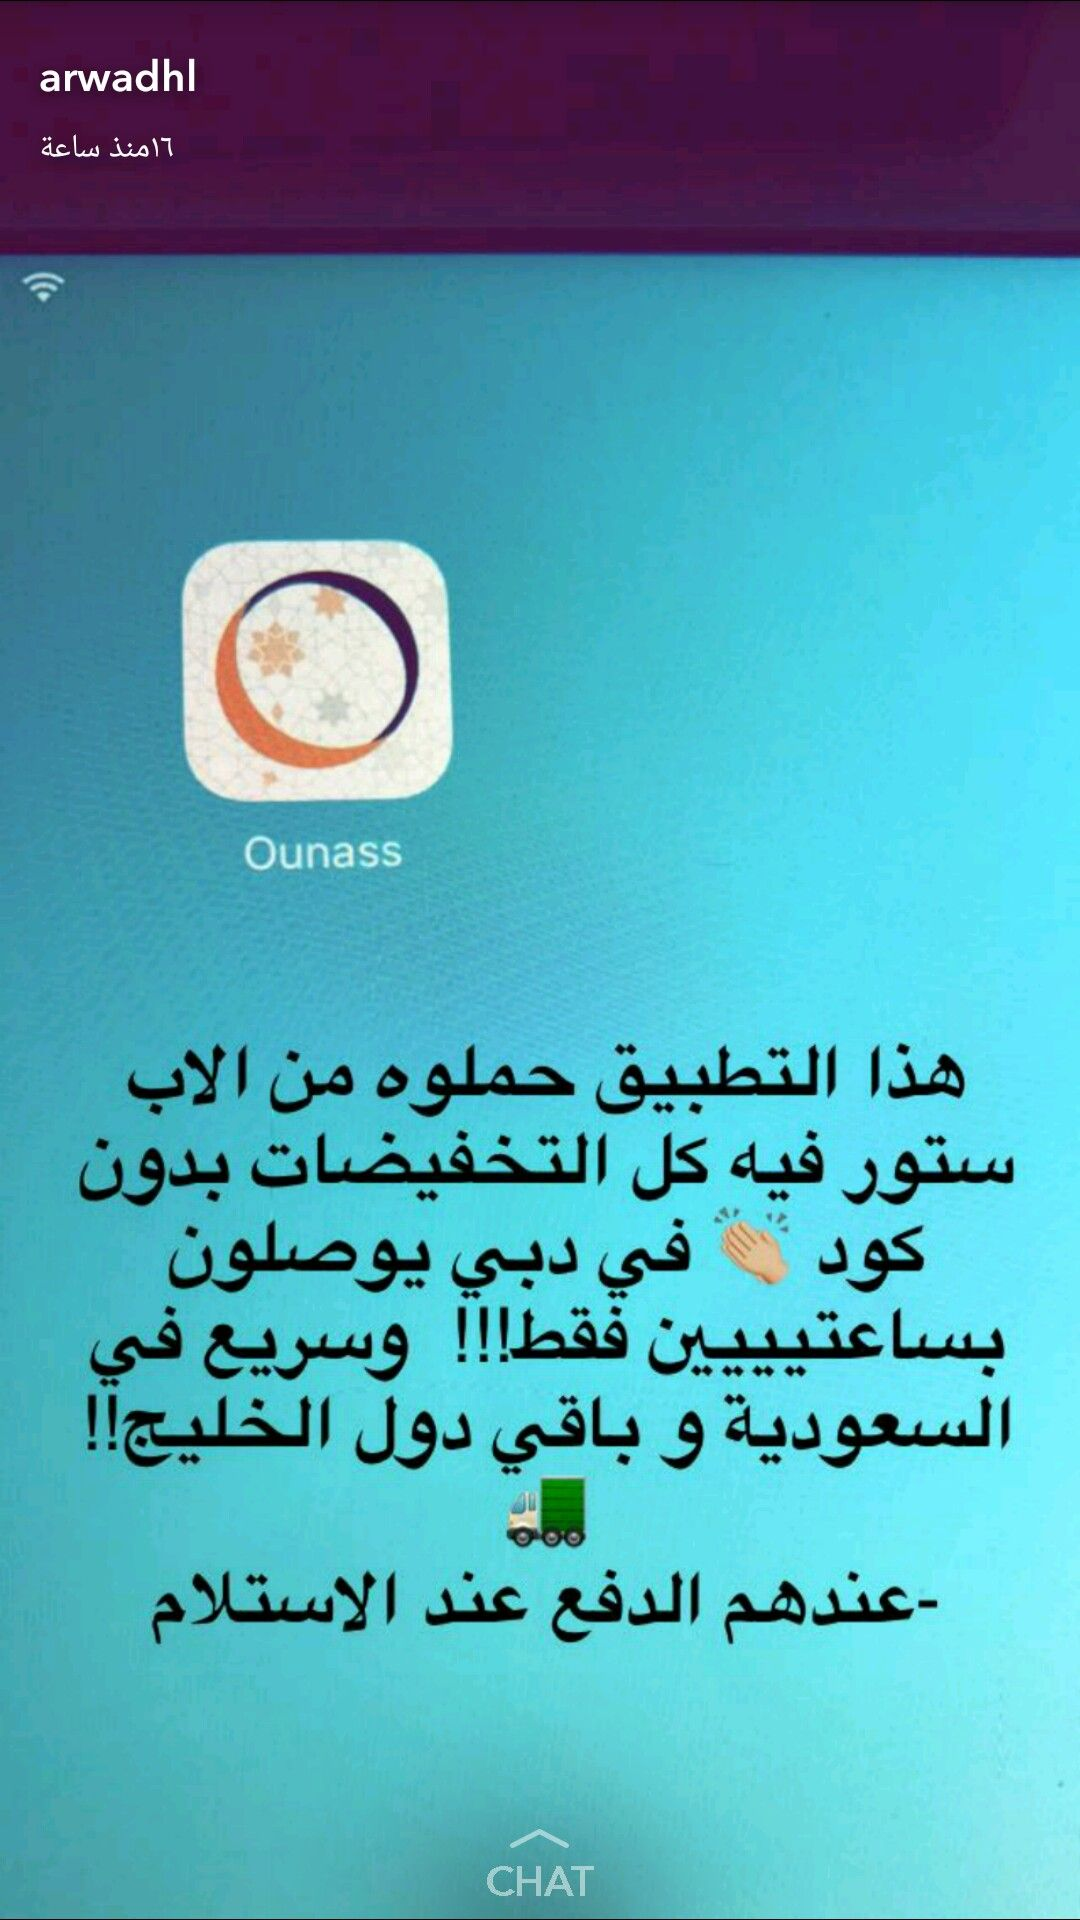 Pin by dhn awood on مواقع (With images) App layout